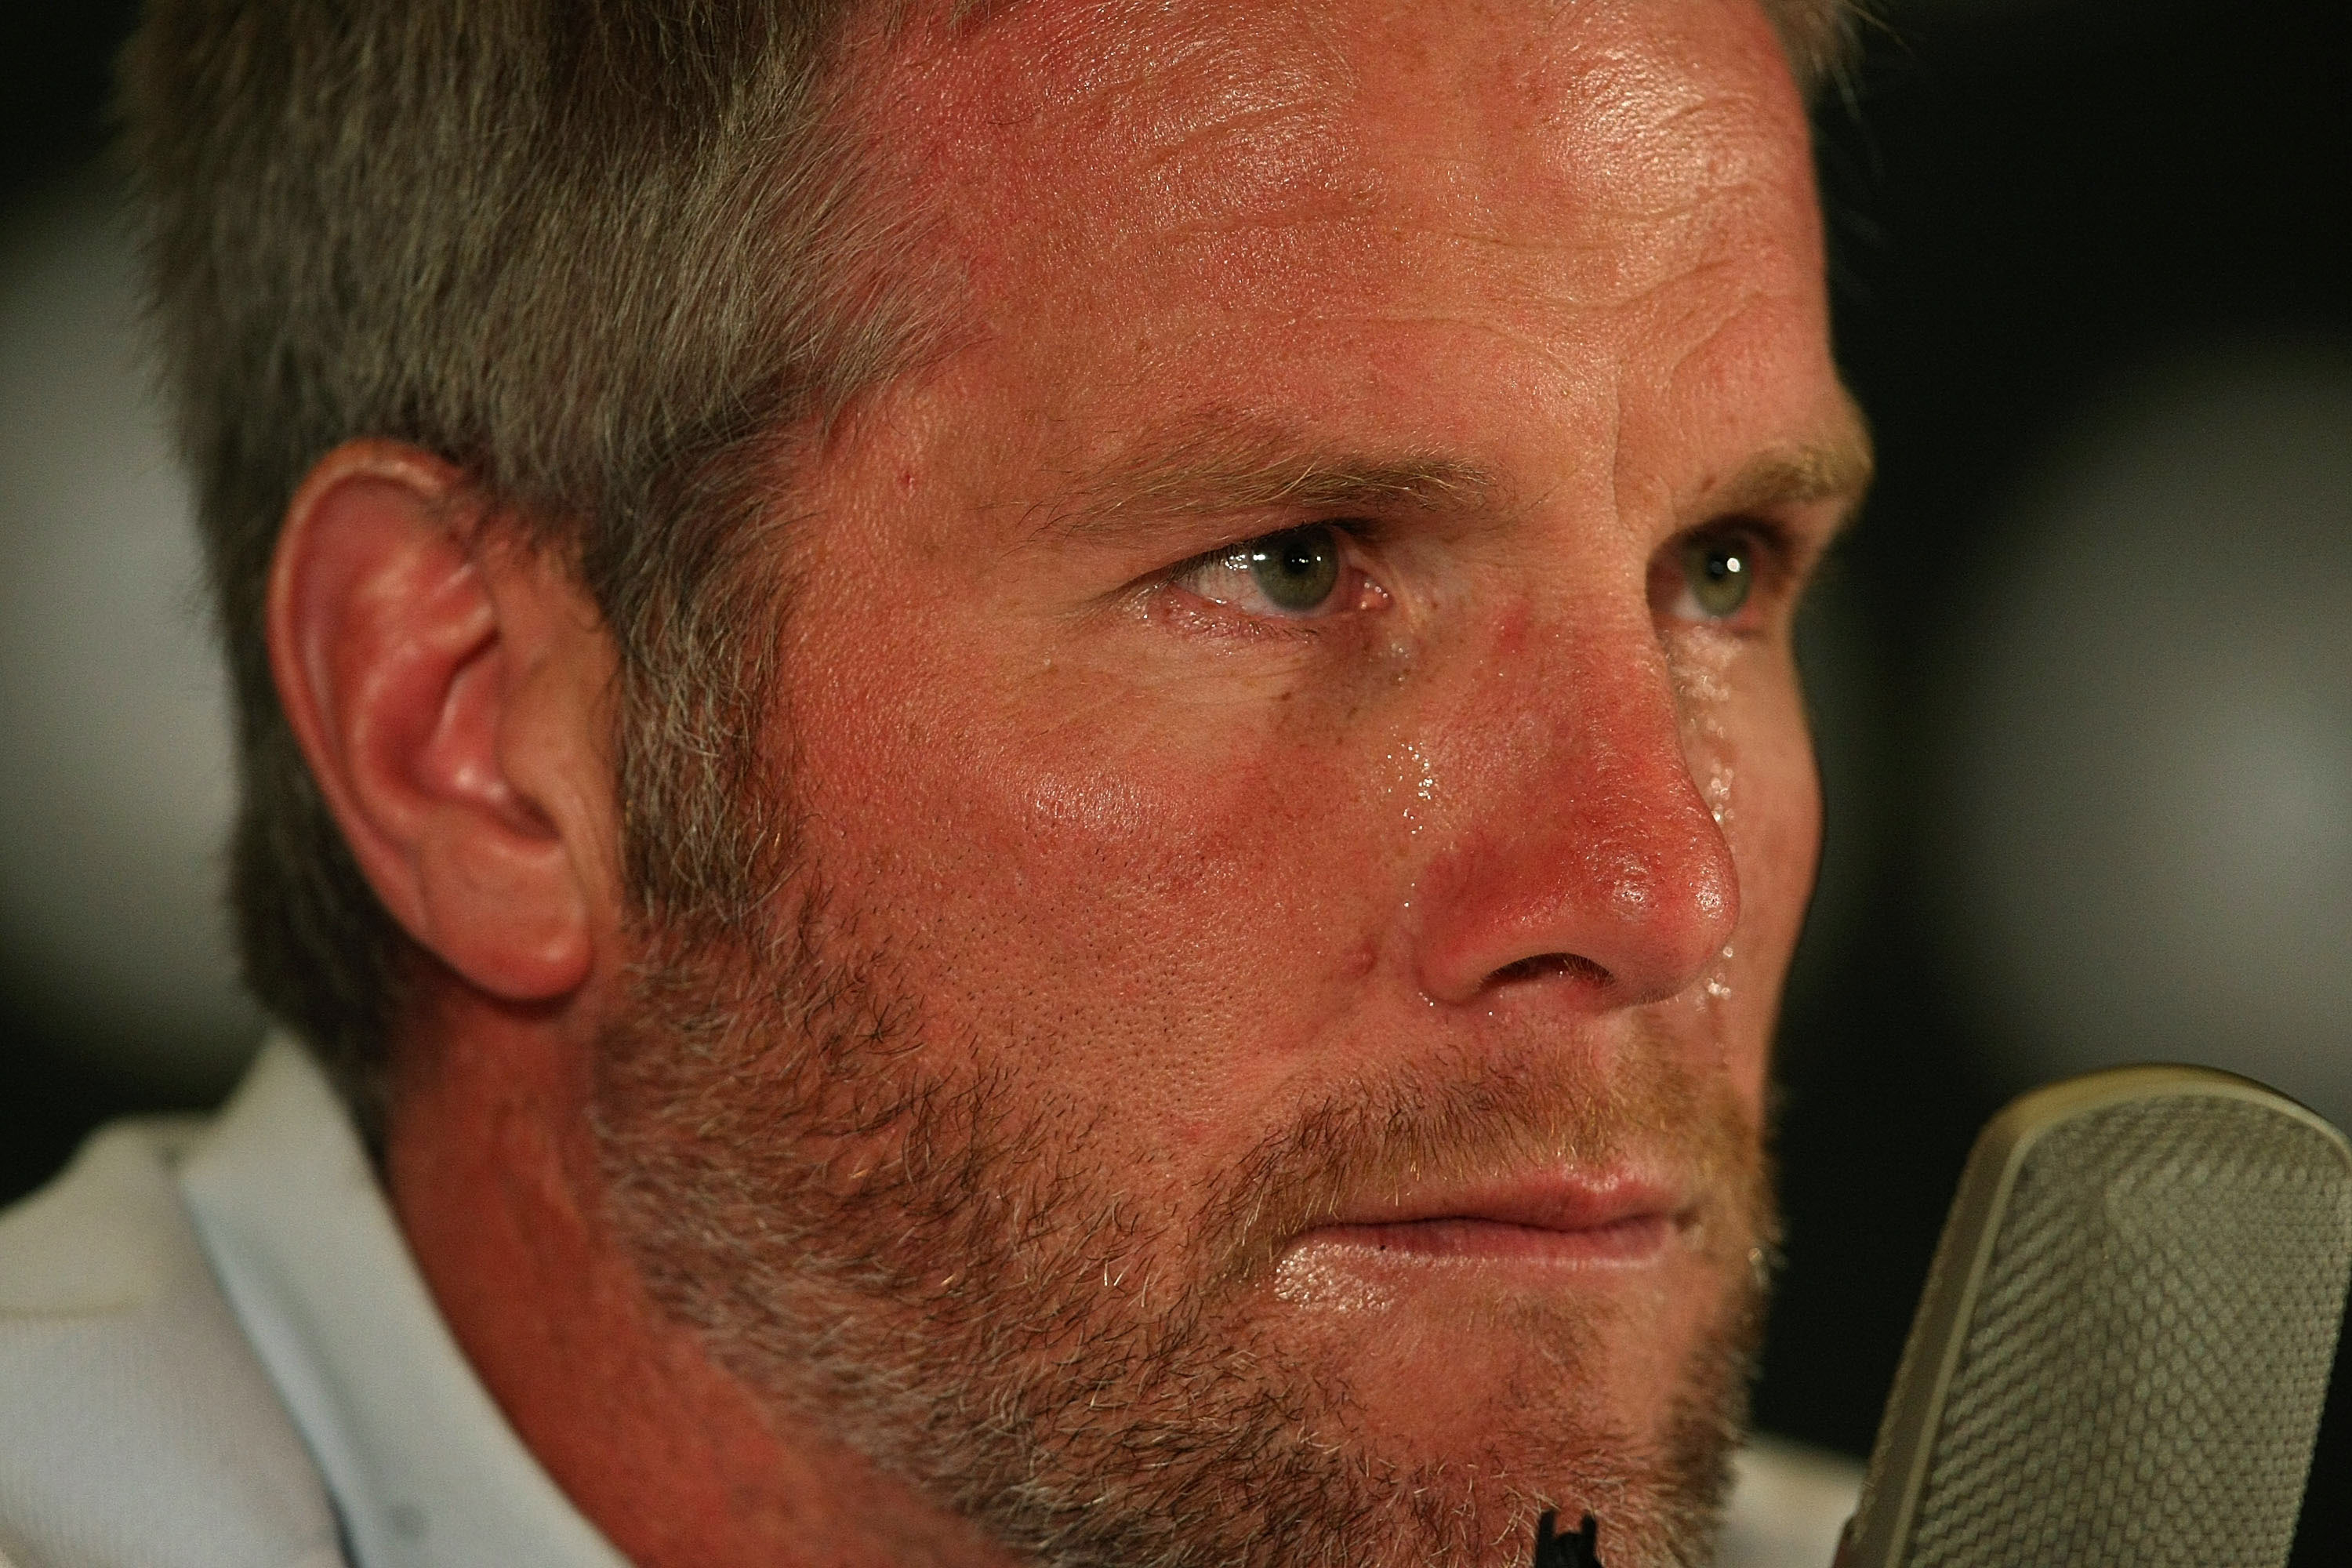 GREEN BAY, WI - MARCH 6: Quarterback Brett Favre of the Green Bay Packers announces his retirement at a press conference at Lambeau Field March 6, 2008 in Green Bay, Wisconsin. (Photo by Jonathan Daniel/Getty Images)